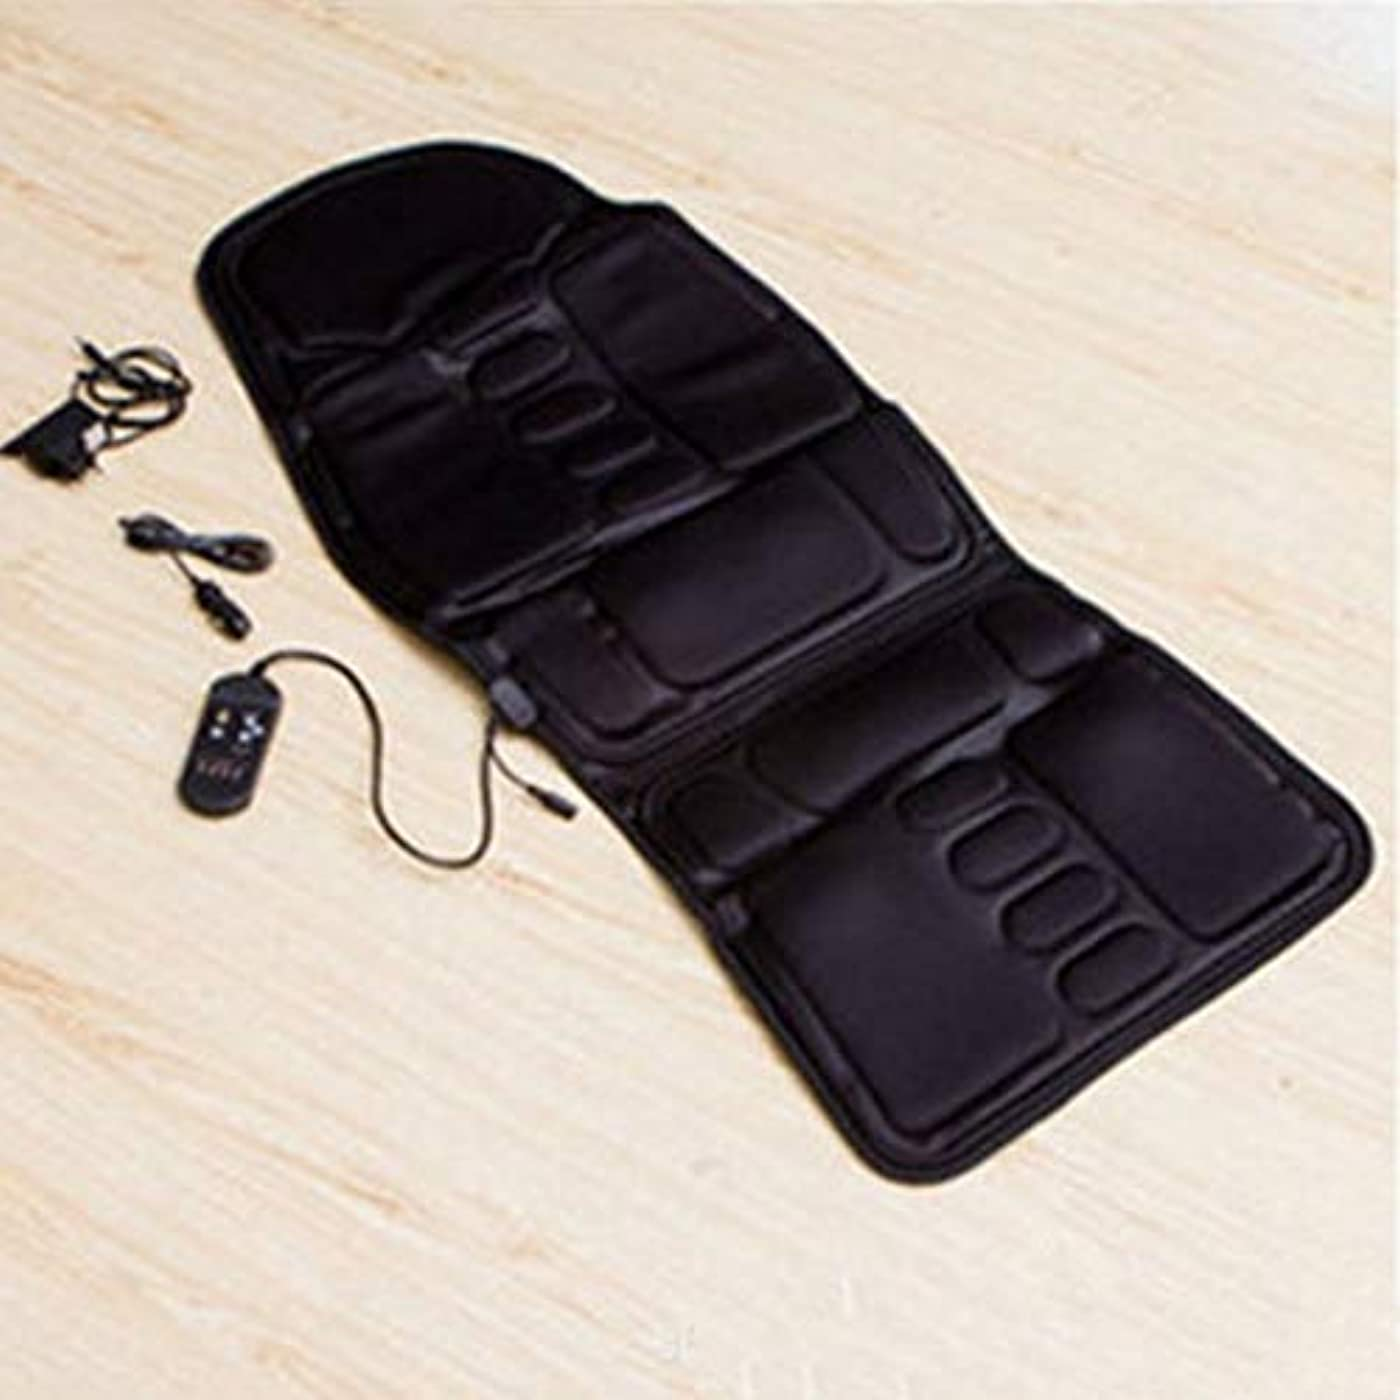 タイヤセージアデレードCar Chair Home Seat Heat Cushion Back Neck Waist Body Electric Multifunctional Chair Massage Pad Back Massager